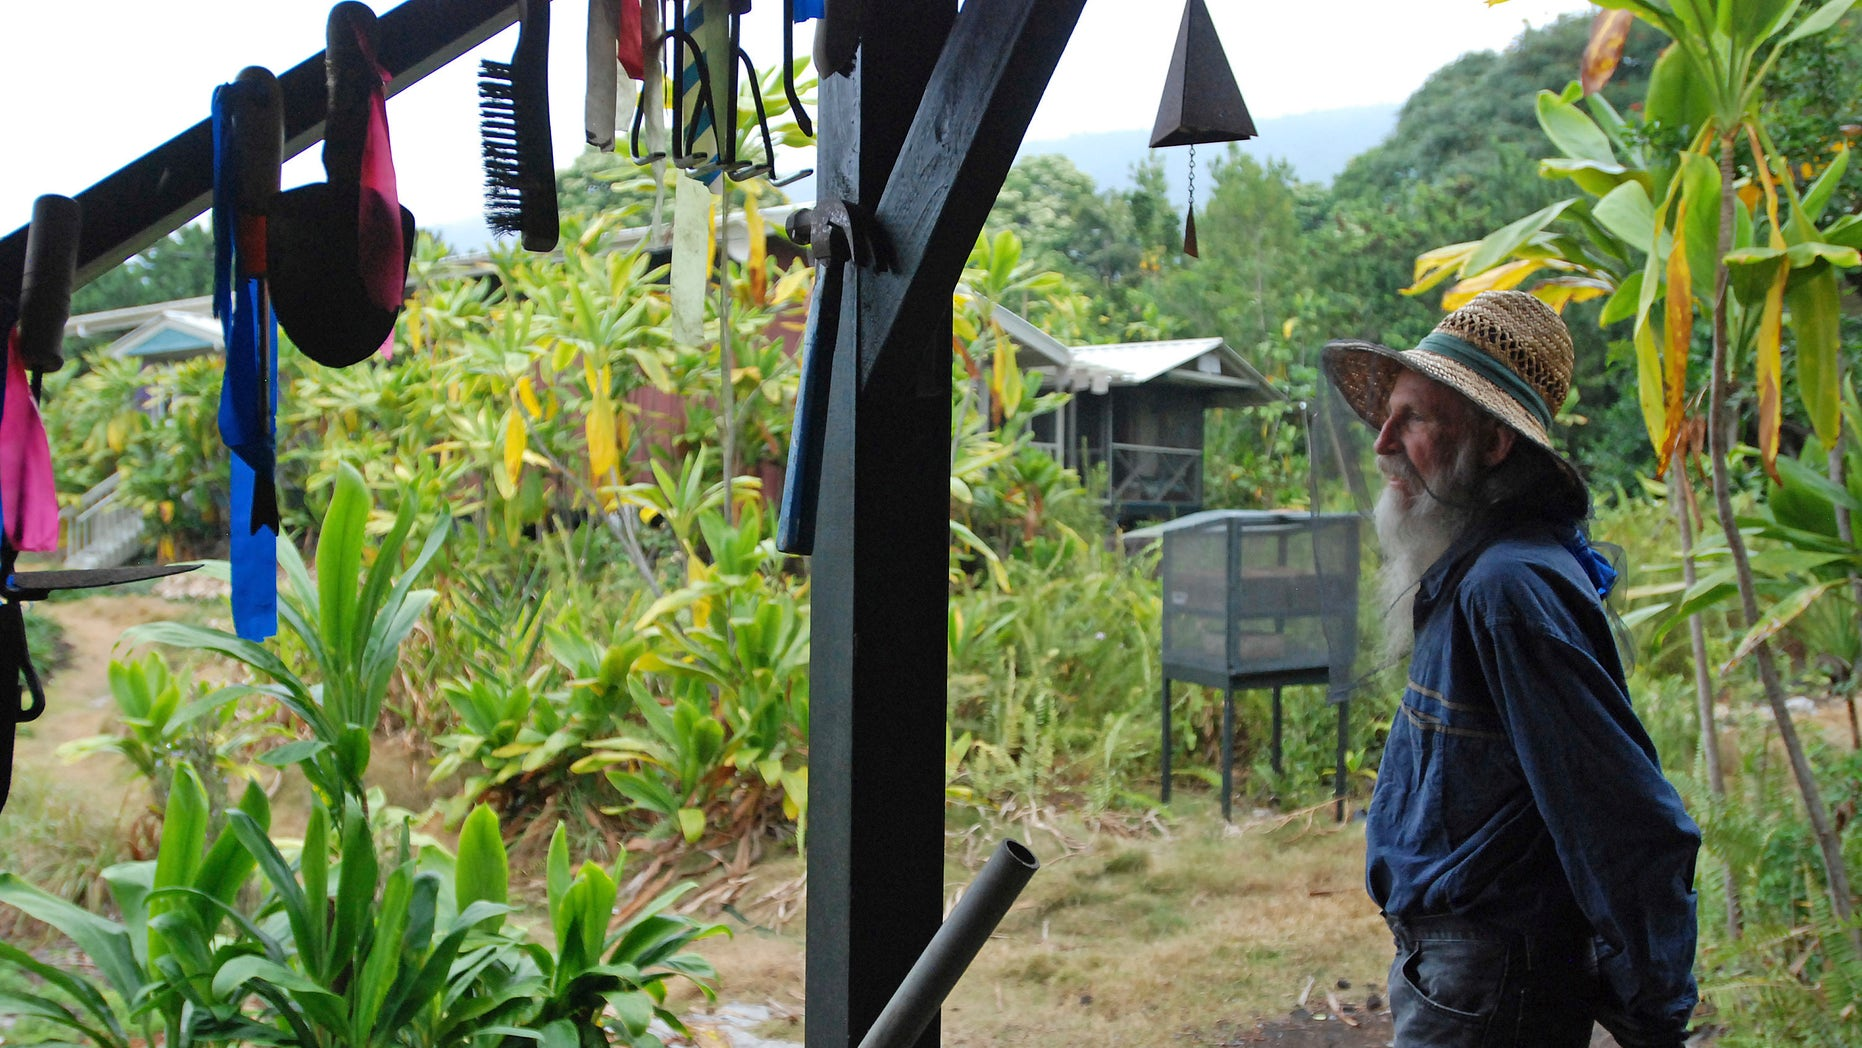 In this Feb. 17, 2016 photo, organic farmer Steve Mann wears mosquito netting while surveying the grounds on his Old Ways Farm in Captain Cook, Hawaii. Hawaii's strong anti-pesticide sentiment, tropical conditions, under-staffing in the Department of Health and an island culture where many live off the grid are part of the many challenges facing the teams that fight dengue fever. Those same issues would confront Hawaii if the Zika virus were to arrive on the islands, and many fear the virus linked to birth defects could be just a plane ride away. (AP Photo/Cathy Bussewitz)